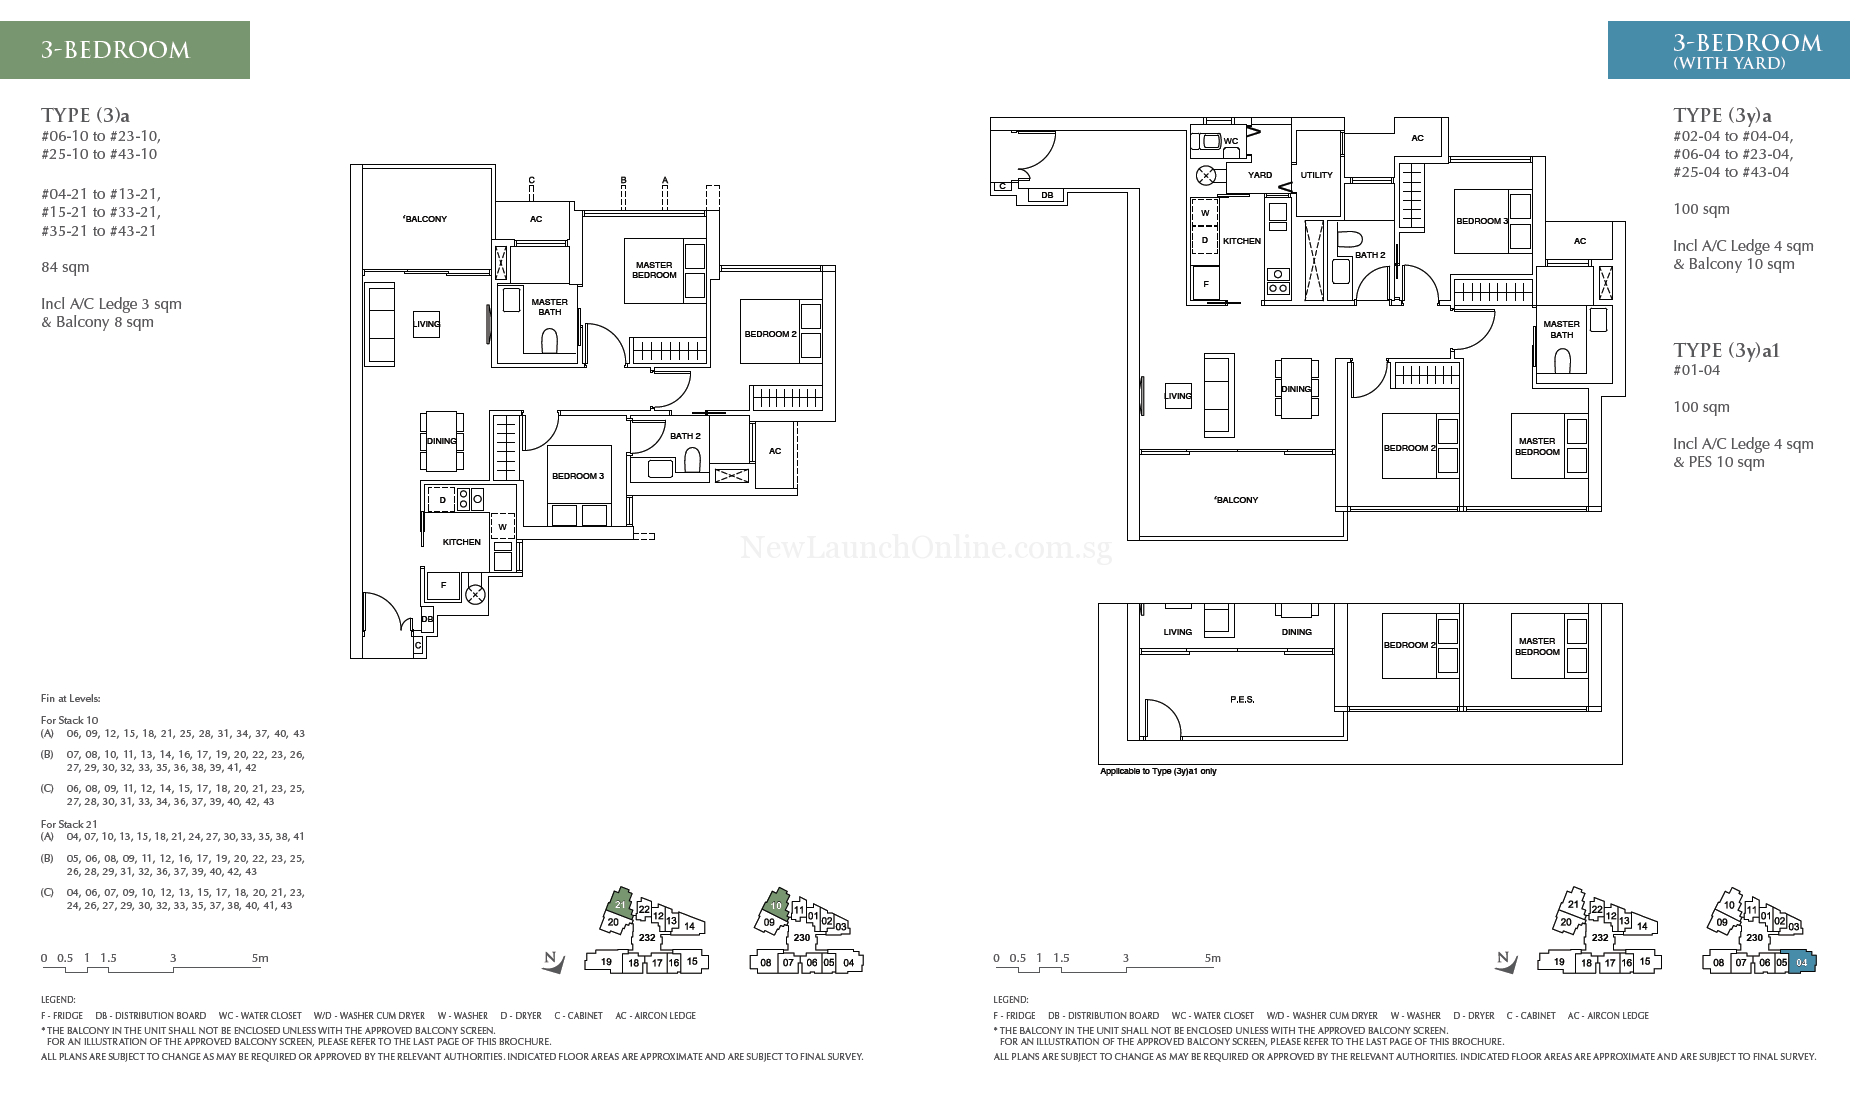 Commonwealth Towers 3 bedroom floor plan